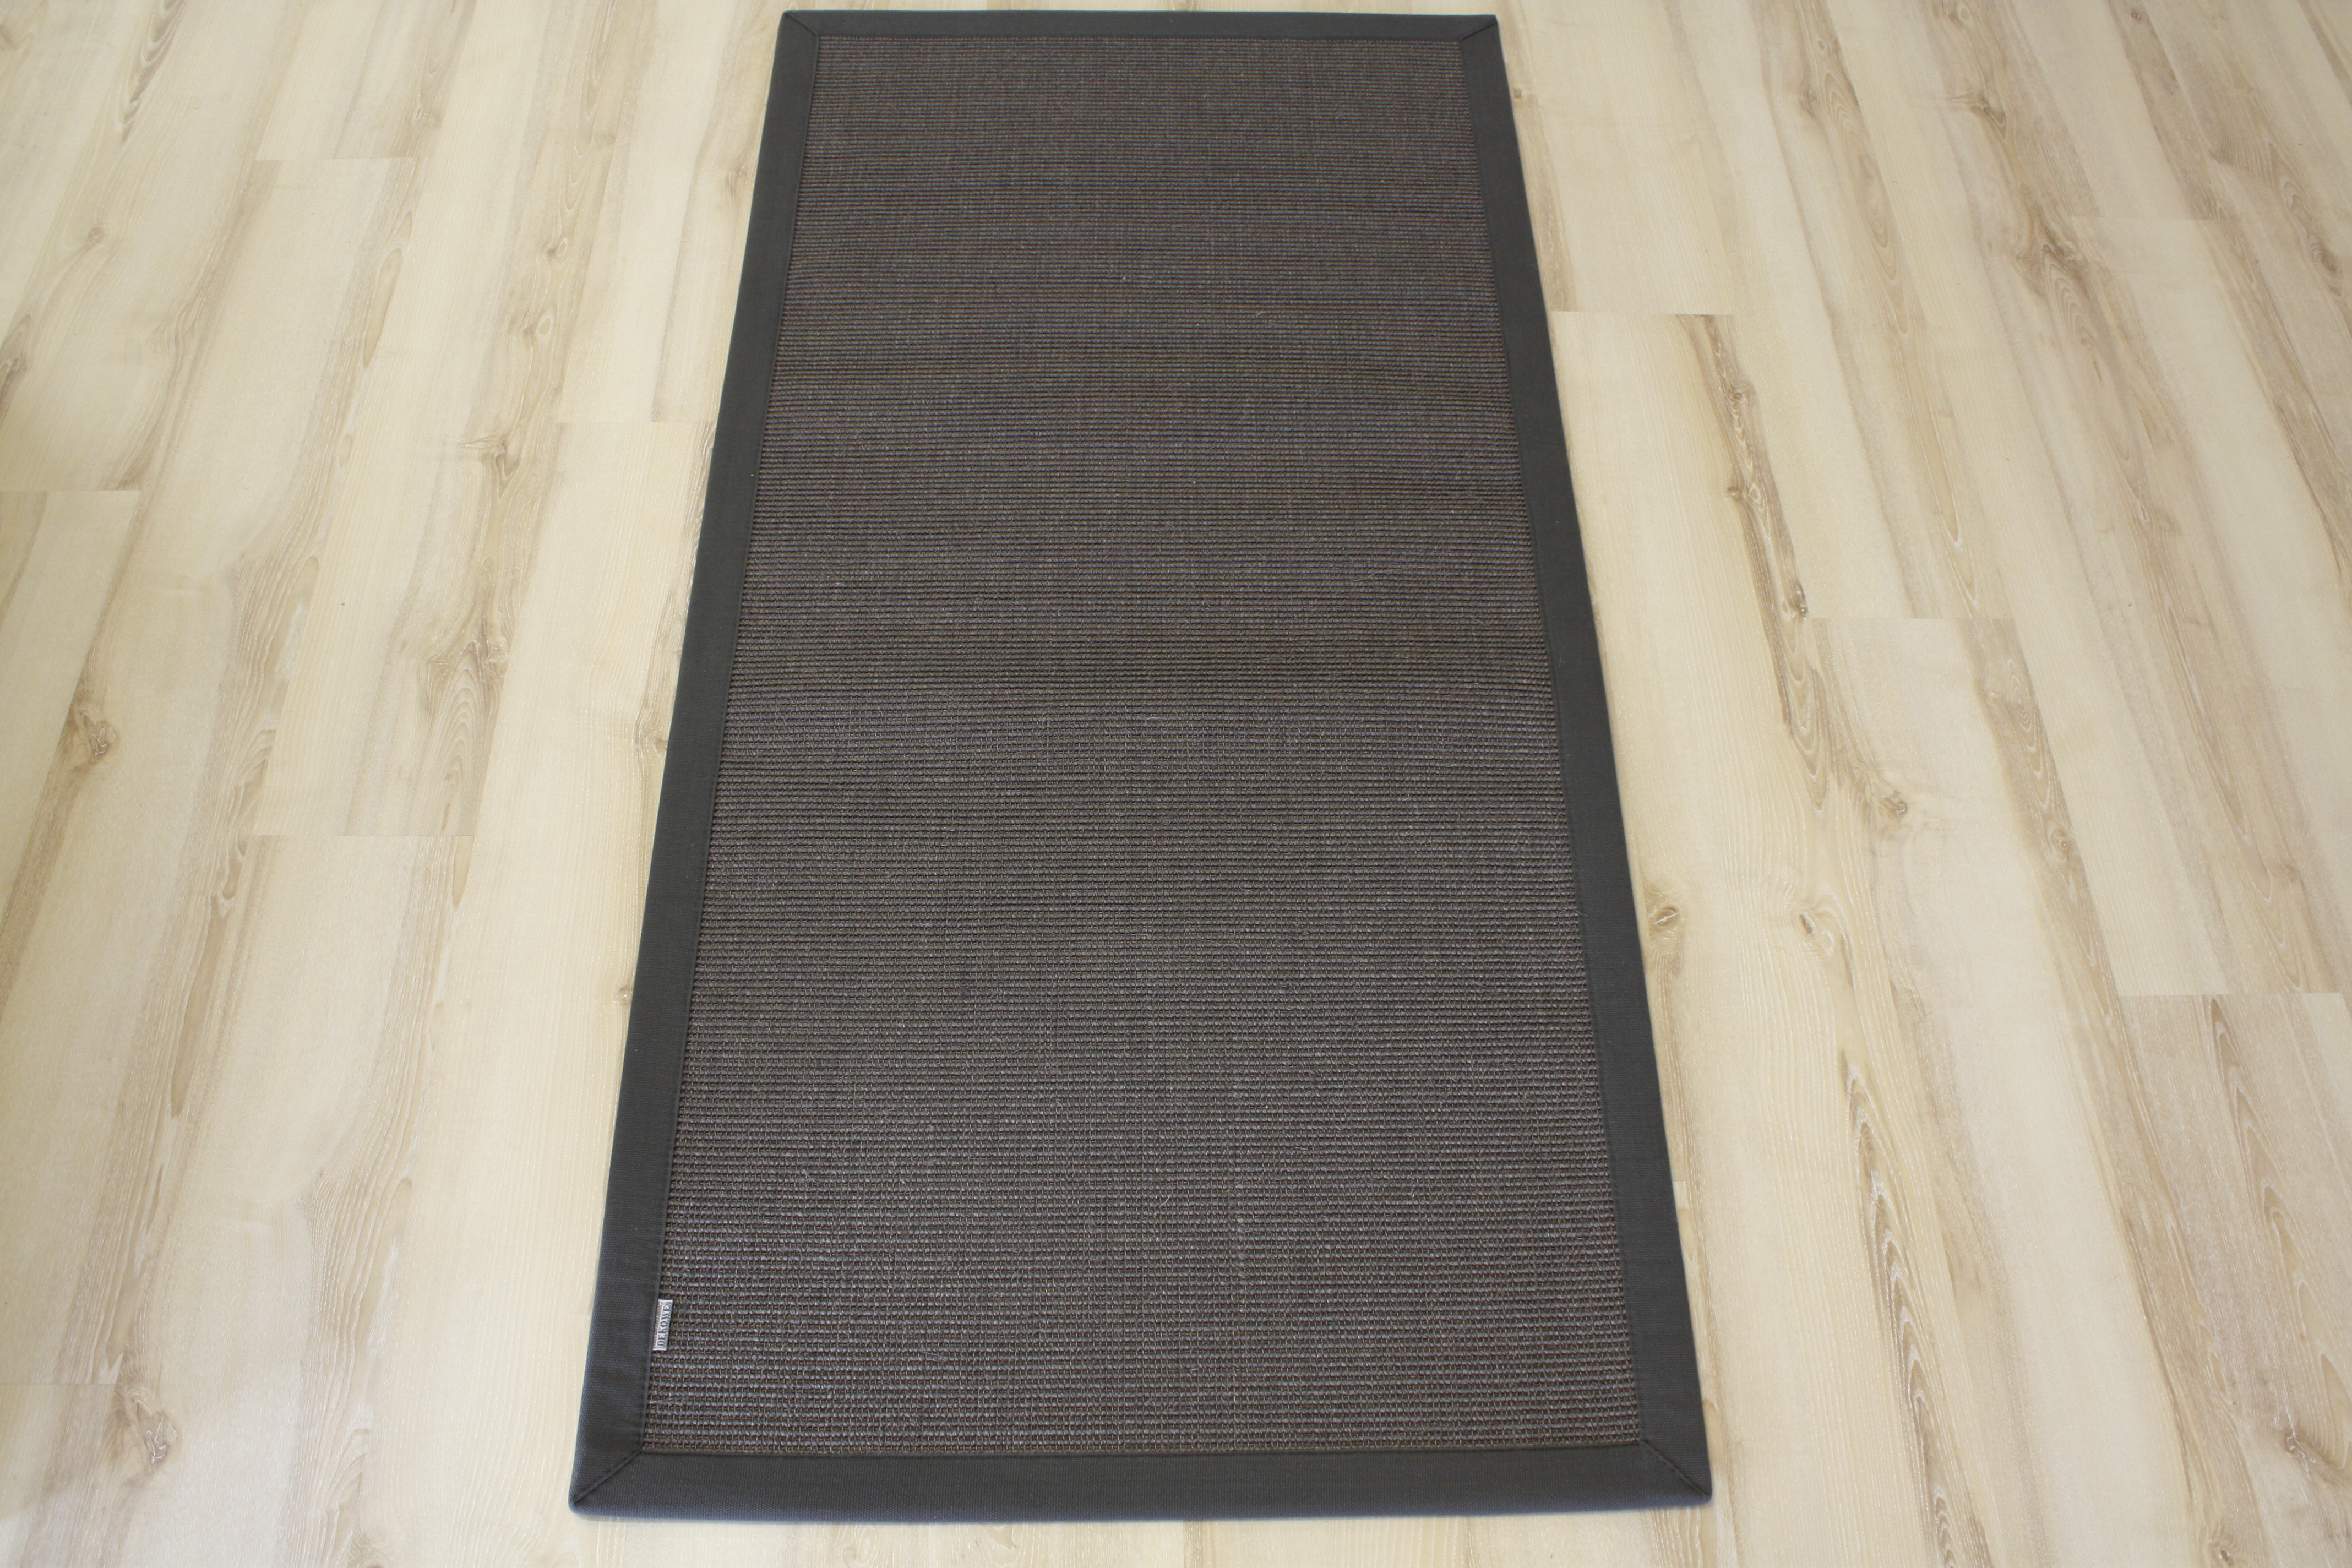 tapis en sisal tapis bordures anthracite 250x350cm 100 sisal ebay. Black Bedroom Furniture Sets. Home Design Ideas